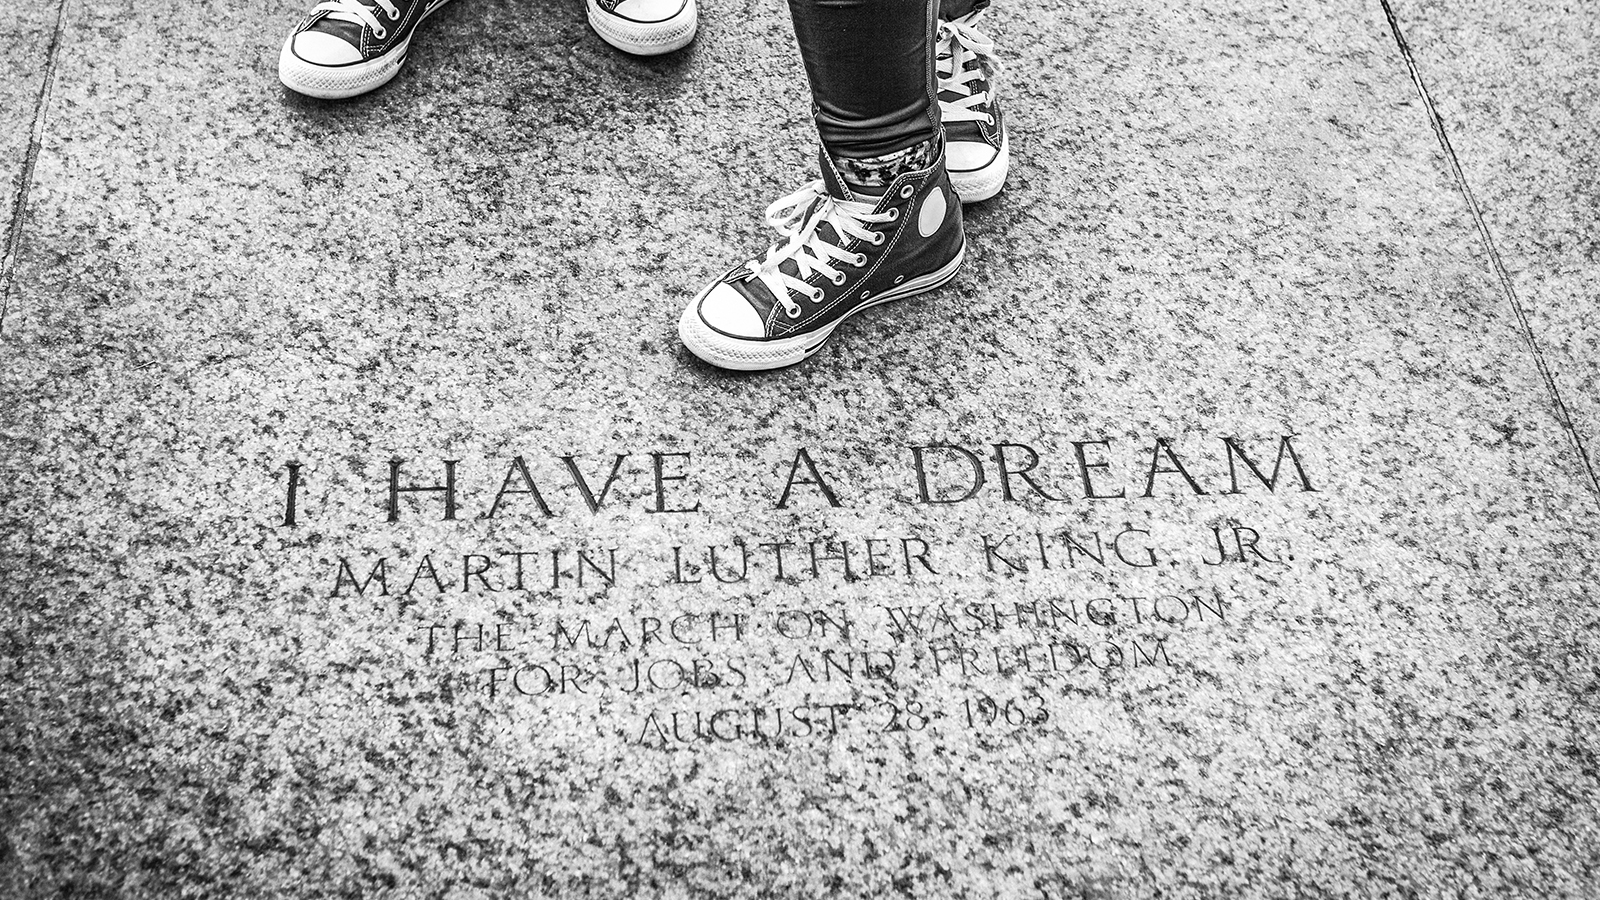 8 Quotations On Leadership From Rev Dr Martin Luther King Jr